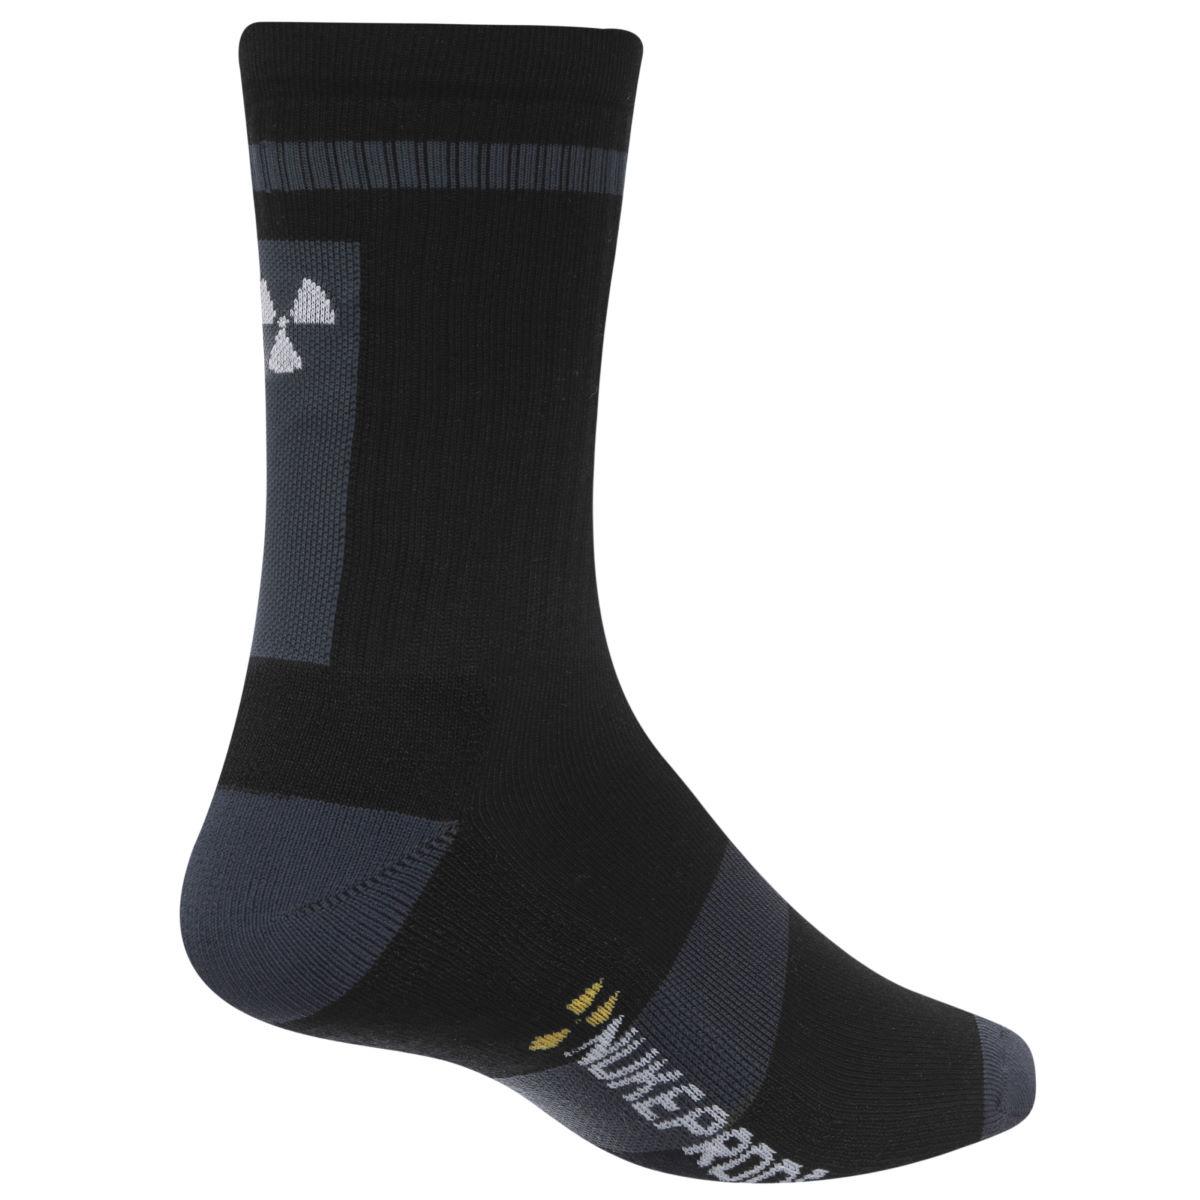 Nukeproof Blackline Sock Black/grey M/l - S/m Black/grey  Socks